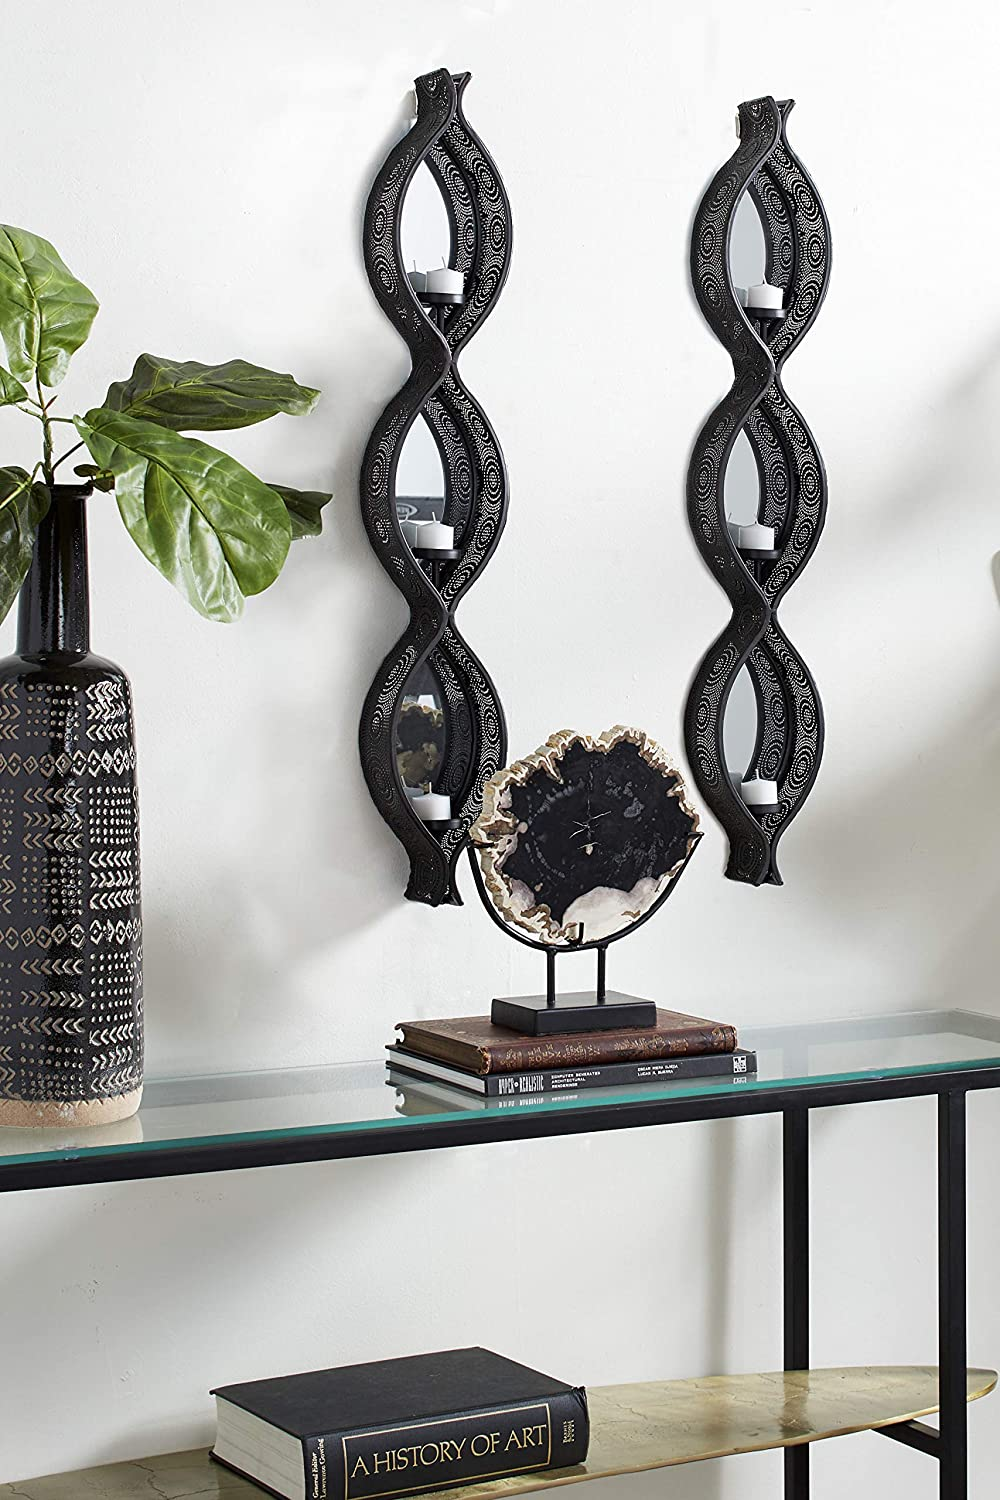 """Deco 79 82903 Eclectic Ellipse-Shaped Black Mesh Metal Wall Sconce Candle Holders with Mirrors, Set of 2: 5"""" x 32"""""""